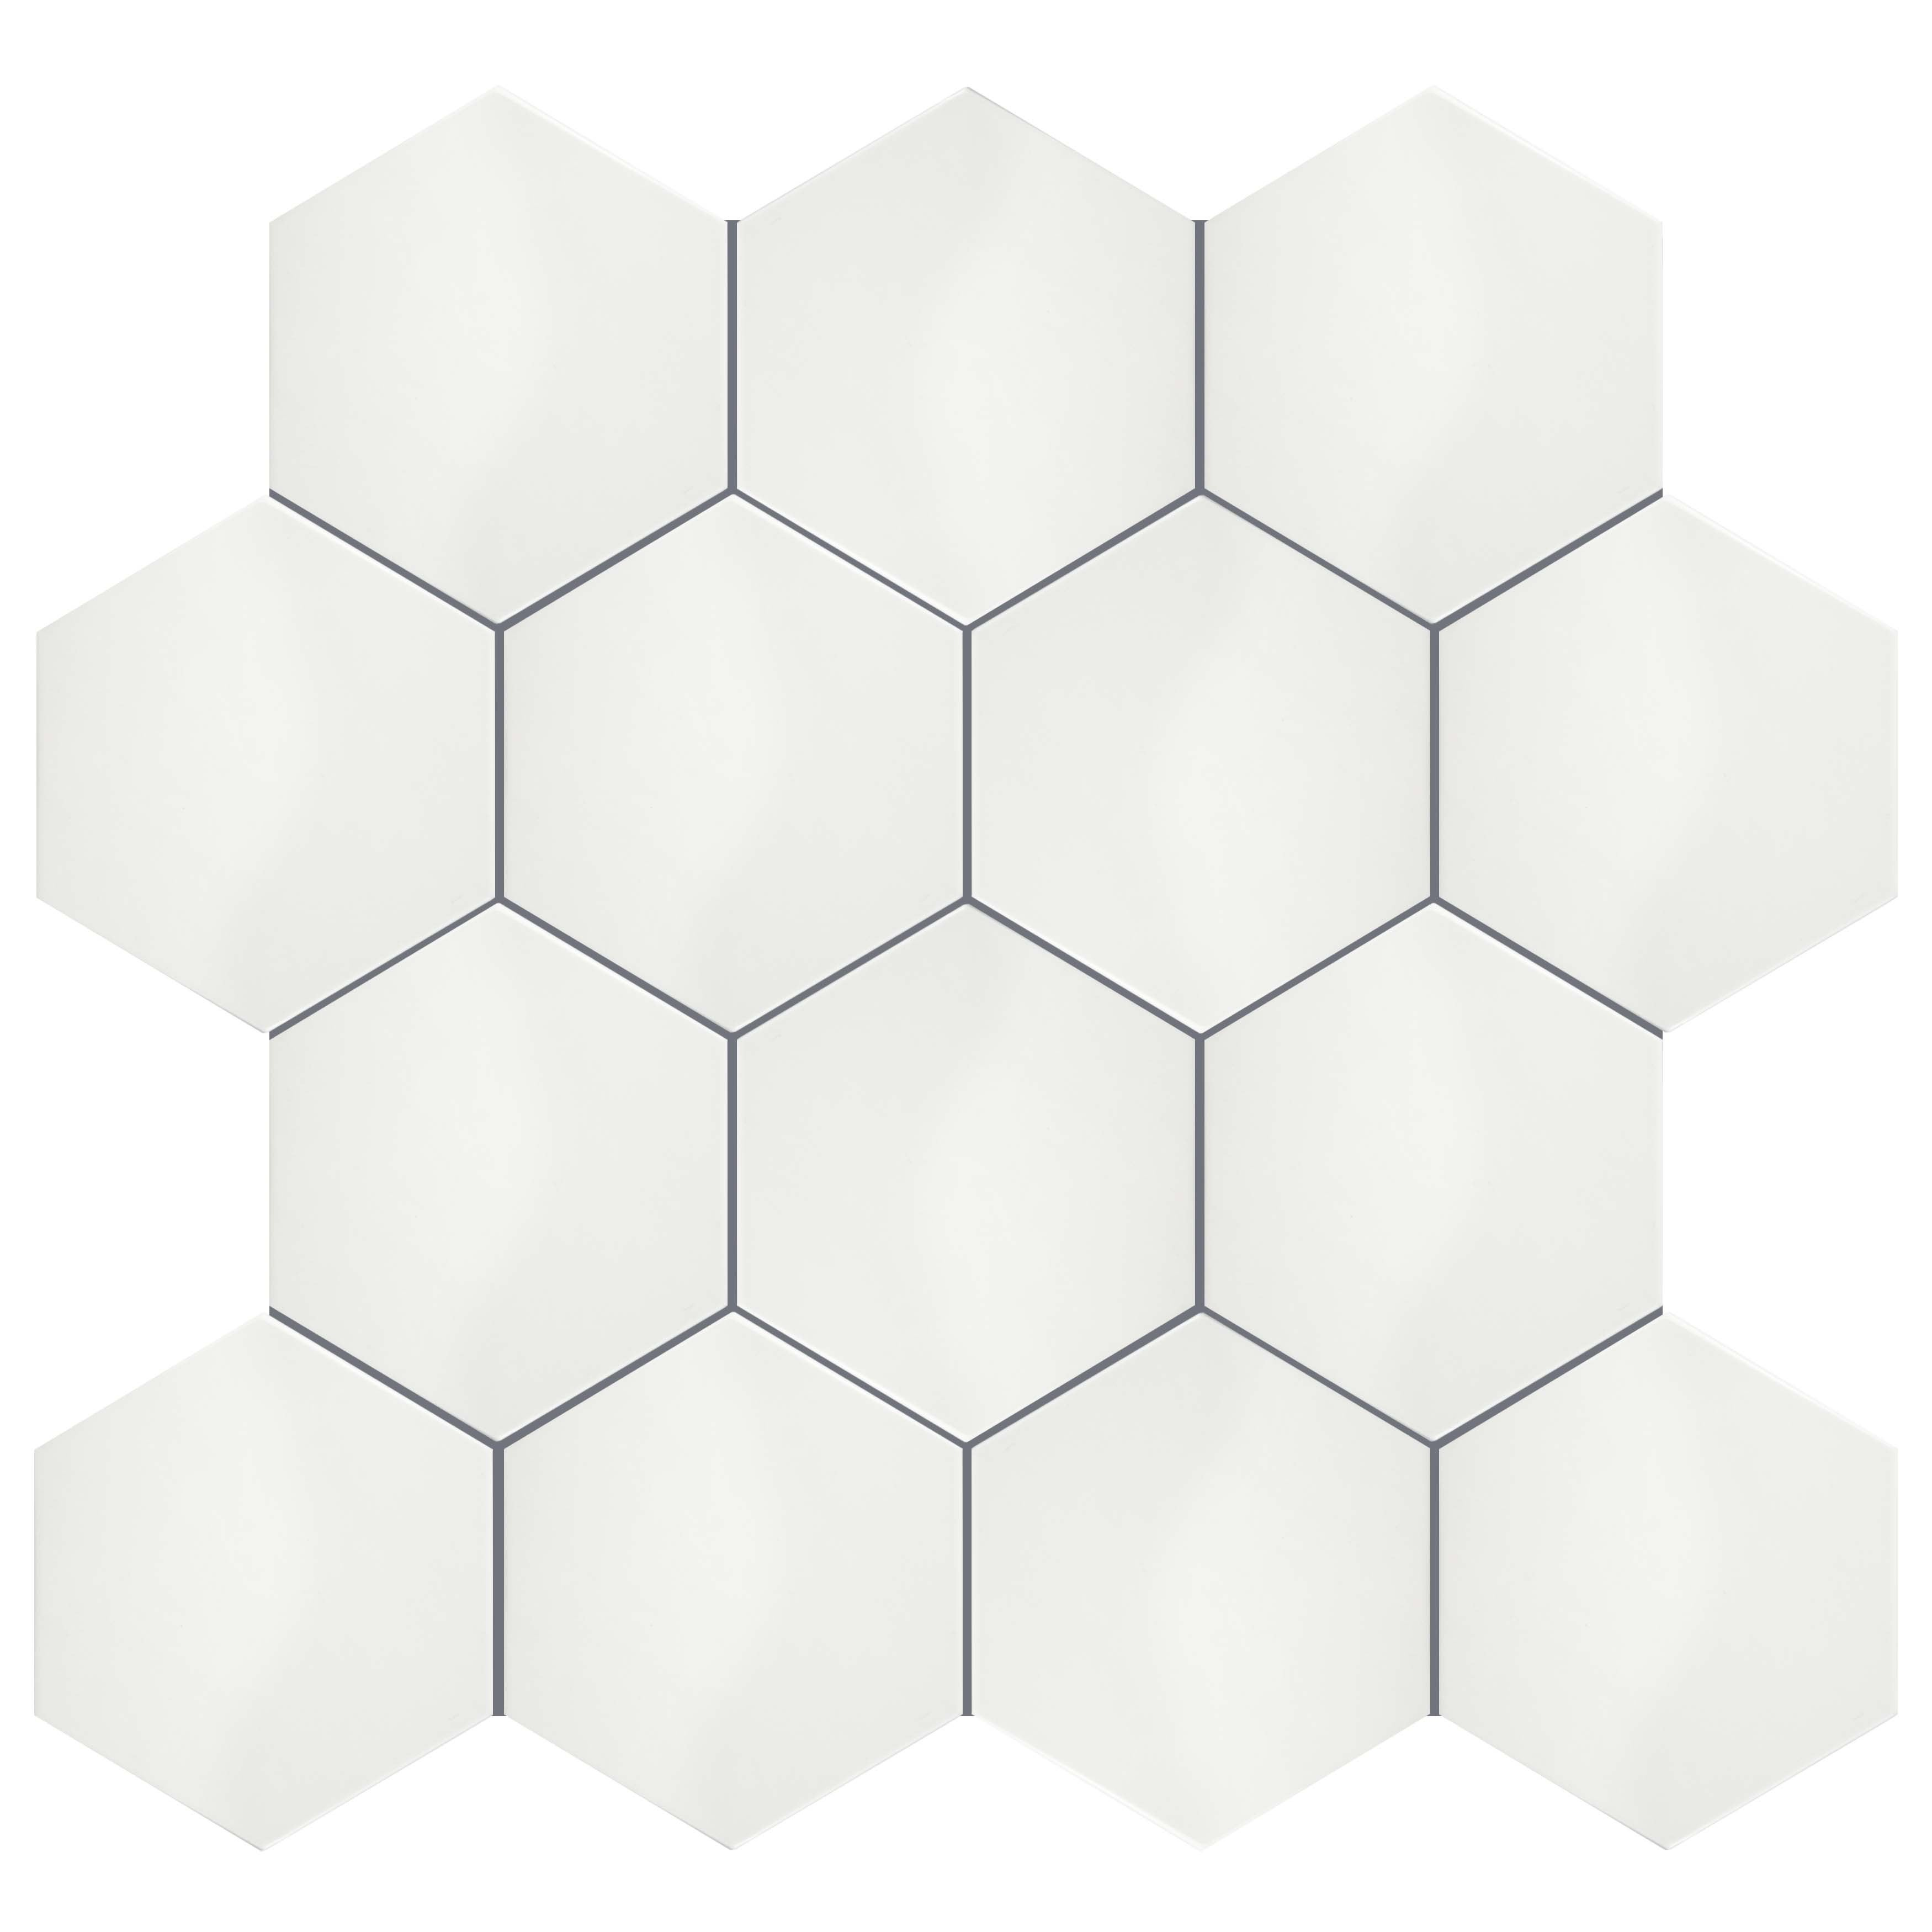 Somertile 7x8 inch hextile glossy blanco ceramic floor and wall somertile 7x8 inch hextile glossy blanco ceramic floor and wall tile 14 tiles44 sqft free shipping on orders over 45 overstock 15742532 dailygadgetfo Image collections